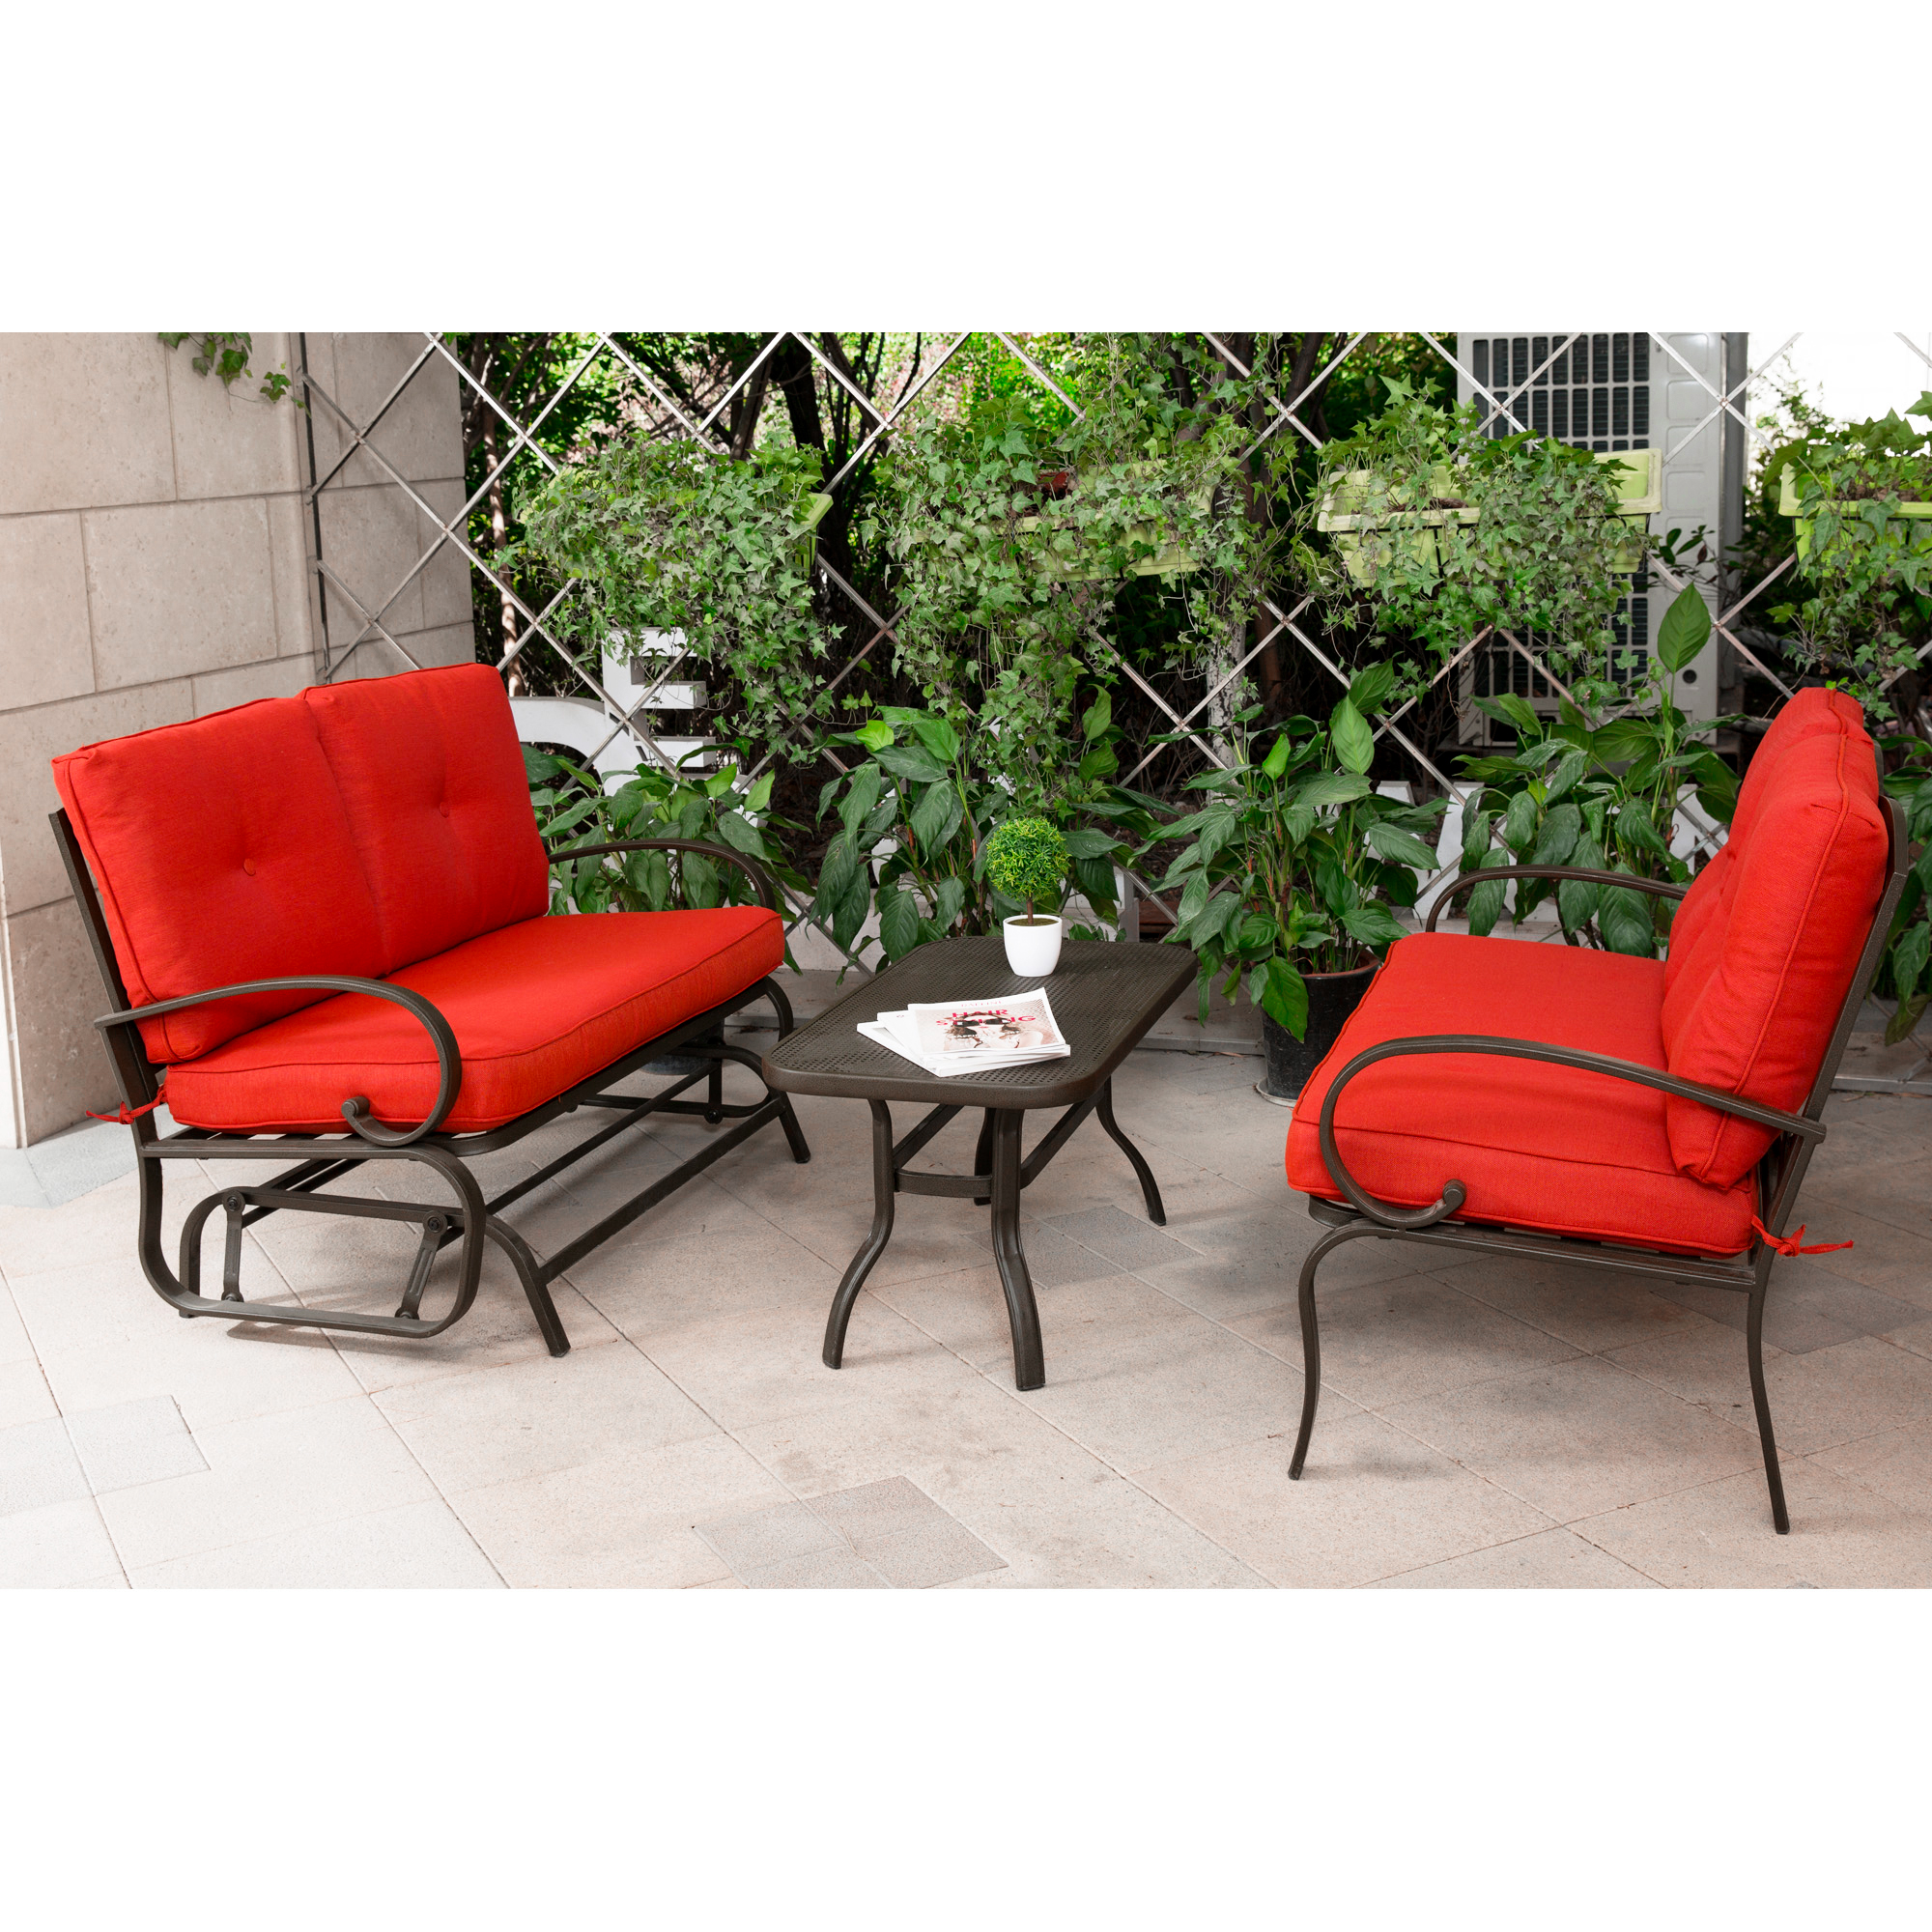 Cloud Mountain 3 Piece Cushioned Outdoor Furniture Garden Patio Conversation Set, Wrought Iron Coffee Table Loveseat Sofa 2 Chairs (Patio Conversation Set 4, Brick Red)